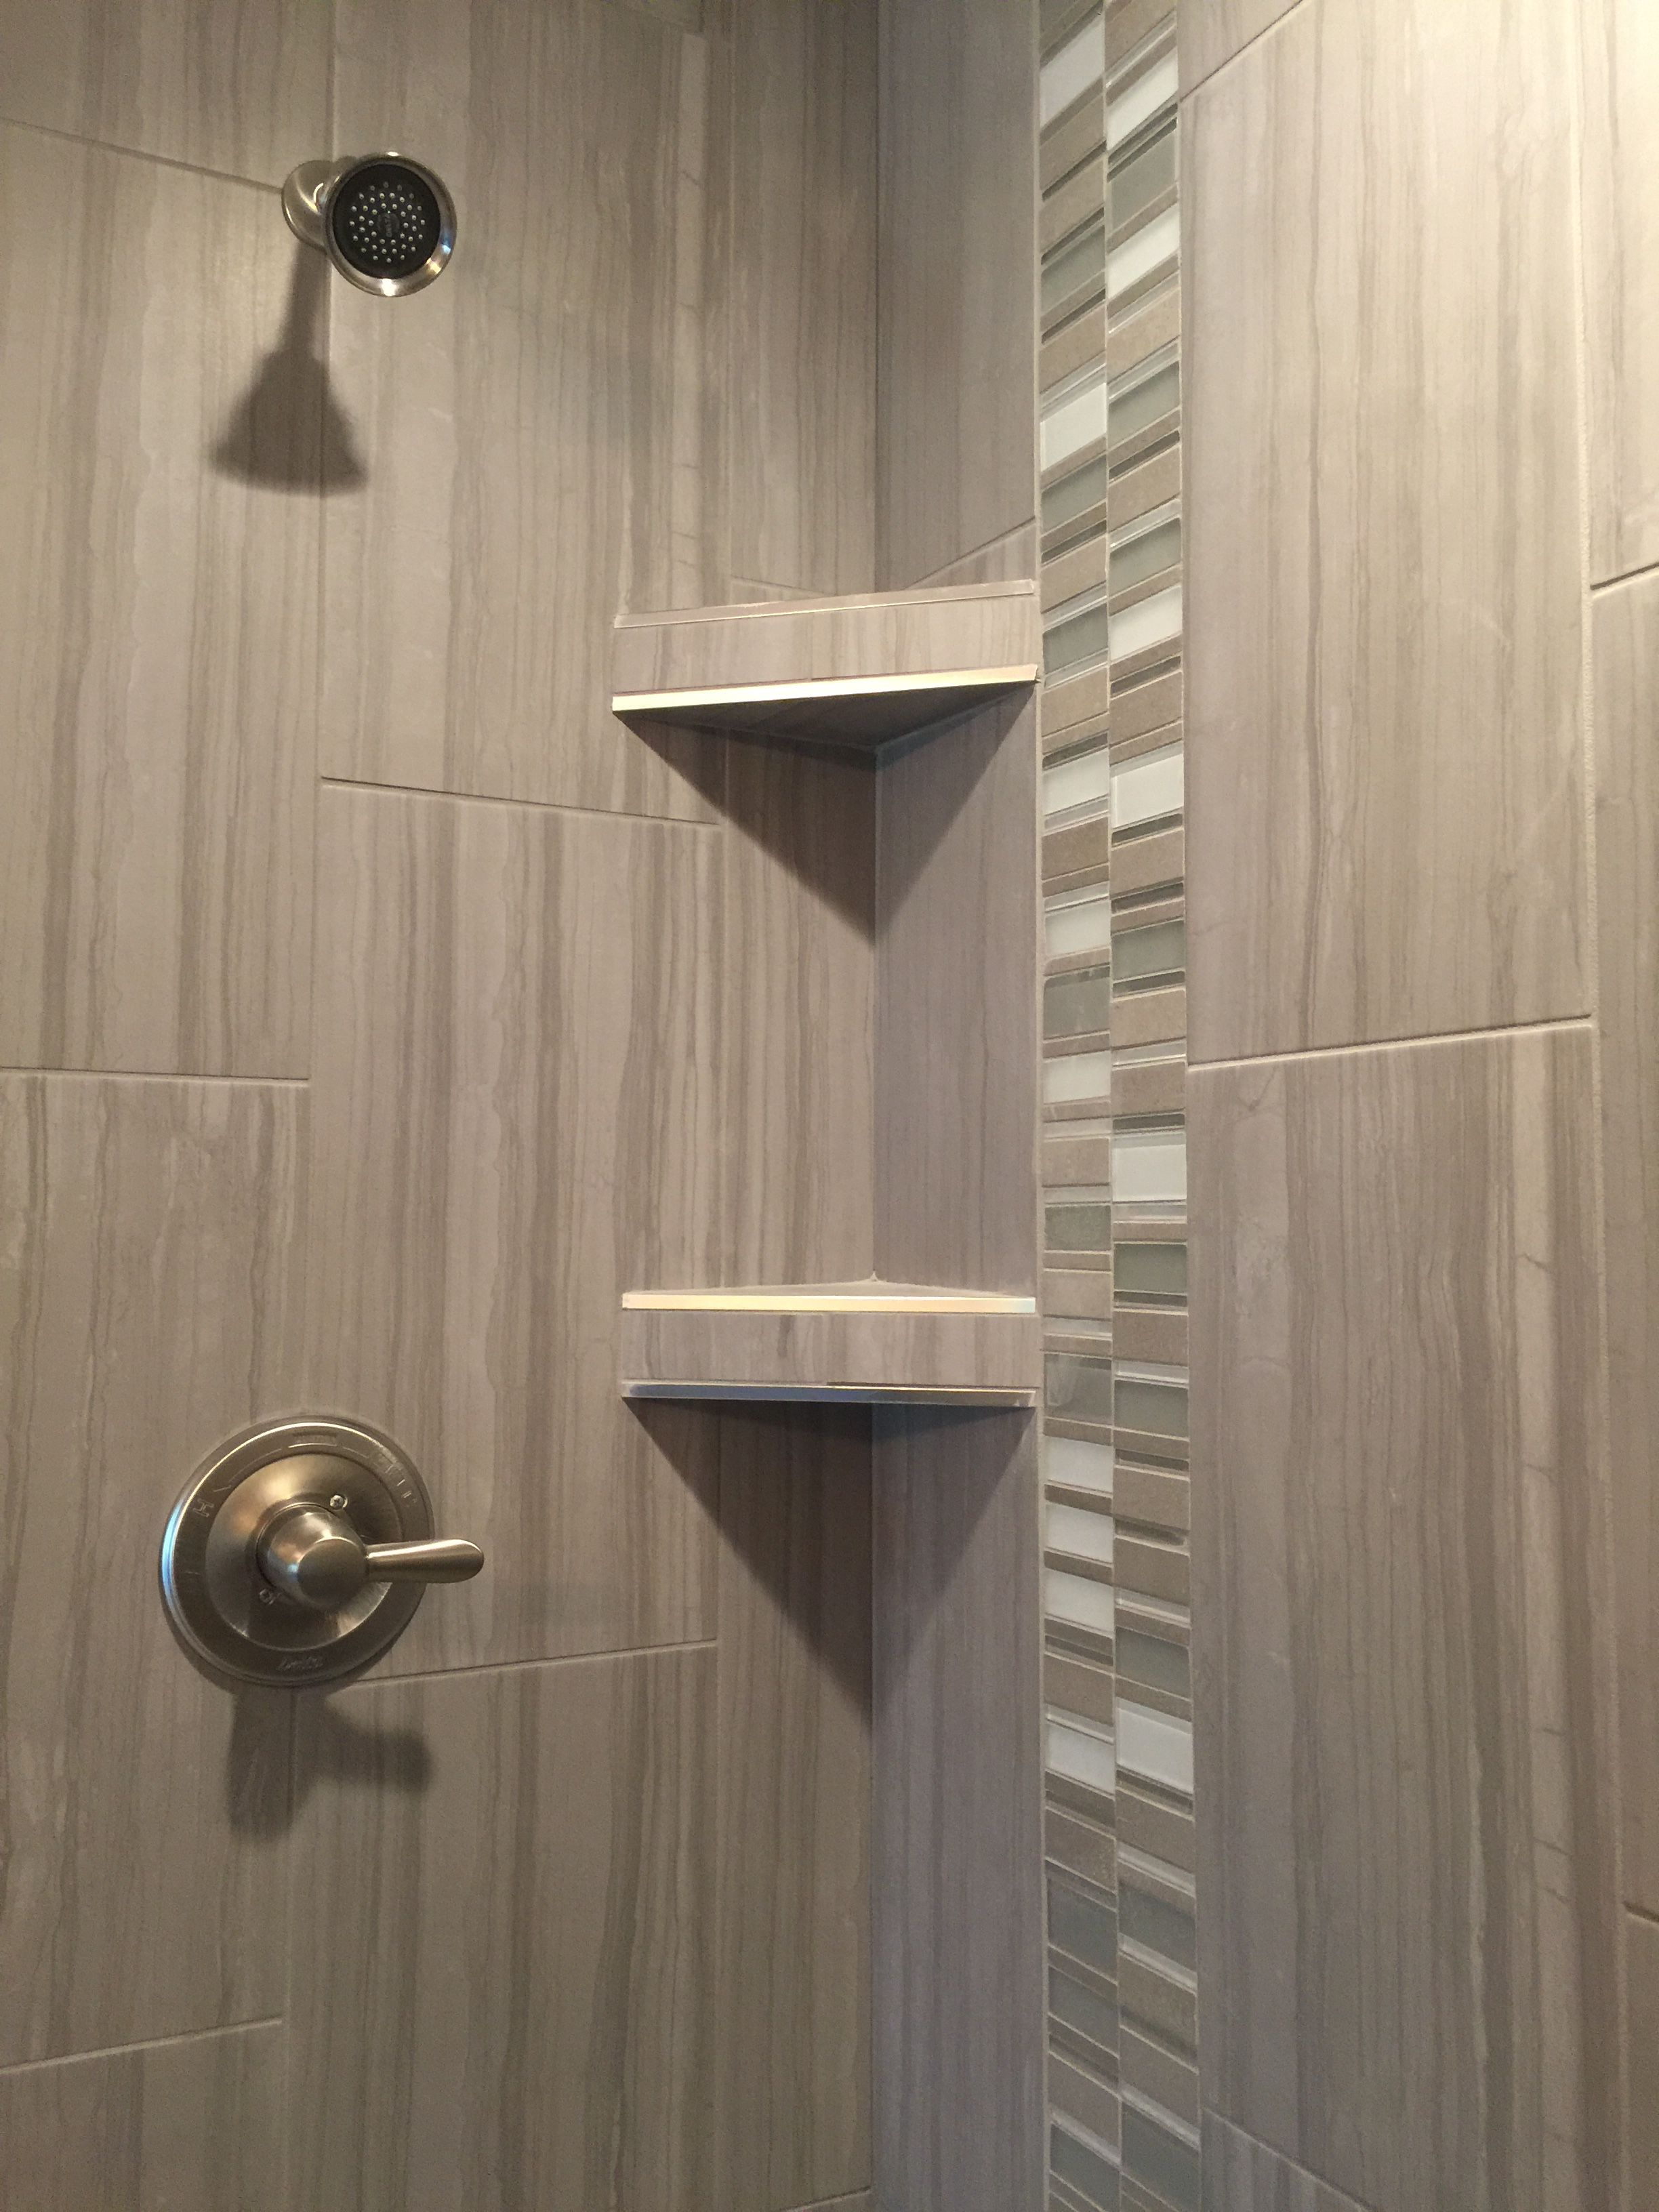 Custom Tiled Shower In A 12x24 Porcelain Tile Install 1 3 Staggered Vertically With A Stone And Glass Mosaic Ac Shower Tile Glass Tile Shower Floor Tile Design